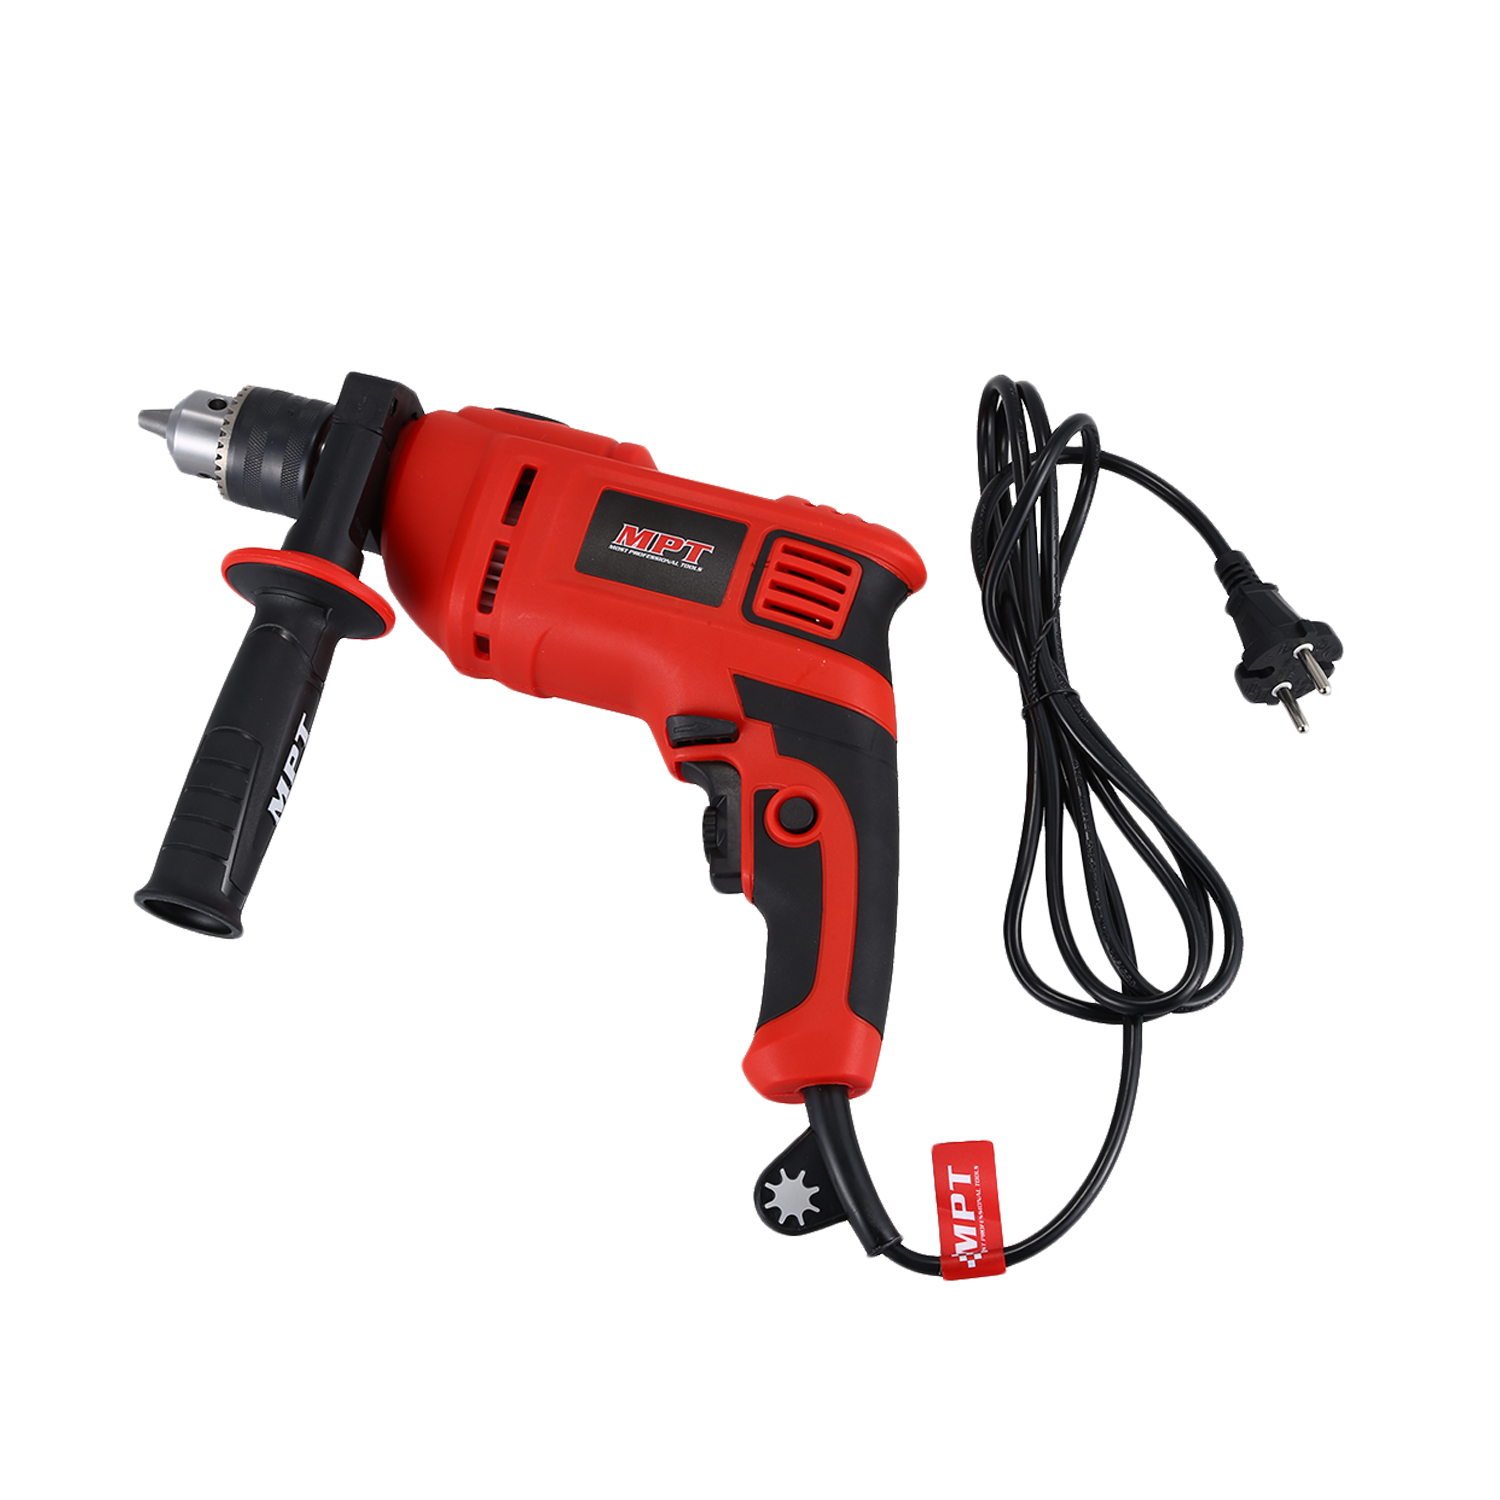 MPT 13mm Variable Speed Impact Drill Electric Hand Drill Household Impact Drill 220v Multi-function Electric Screwdri 10mm variable speed electric drill for angle 380w hand drill 90 angle electric drill 0 1400rpm right angle hand electric drill